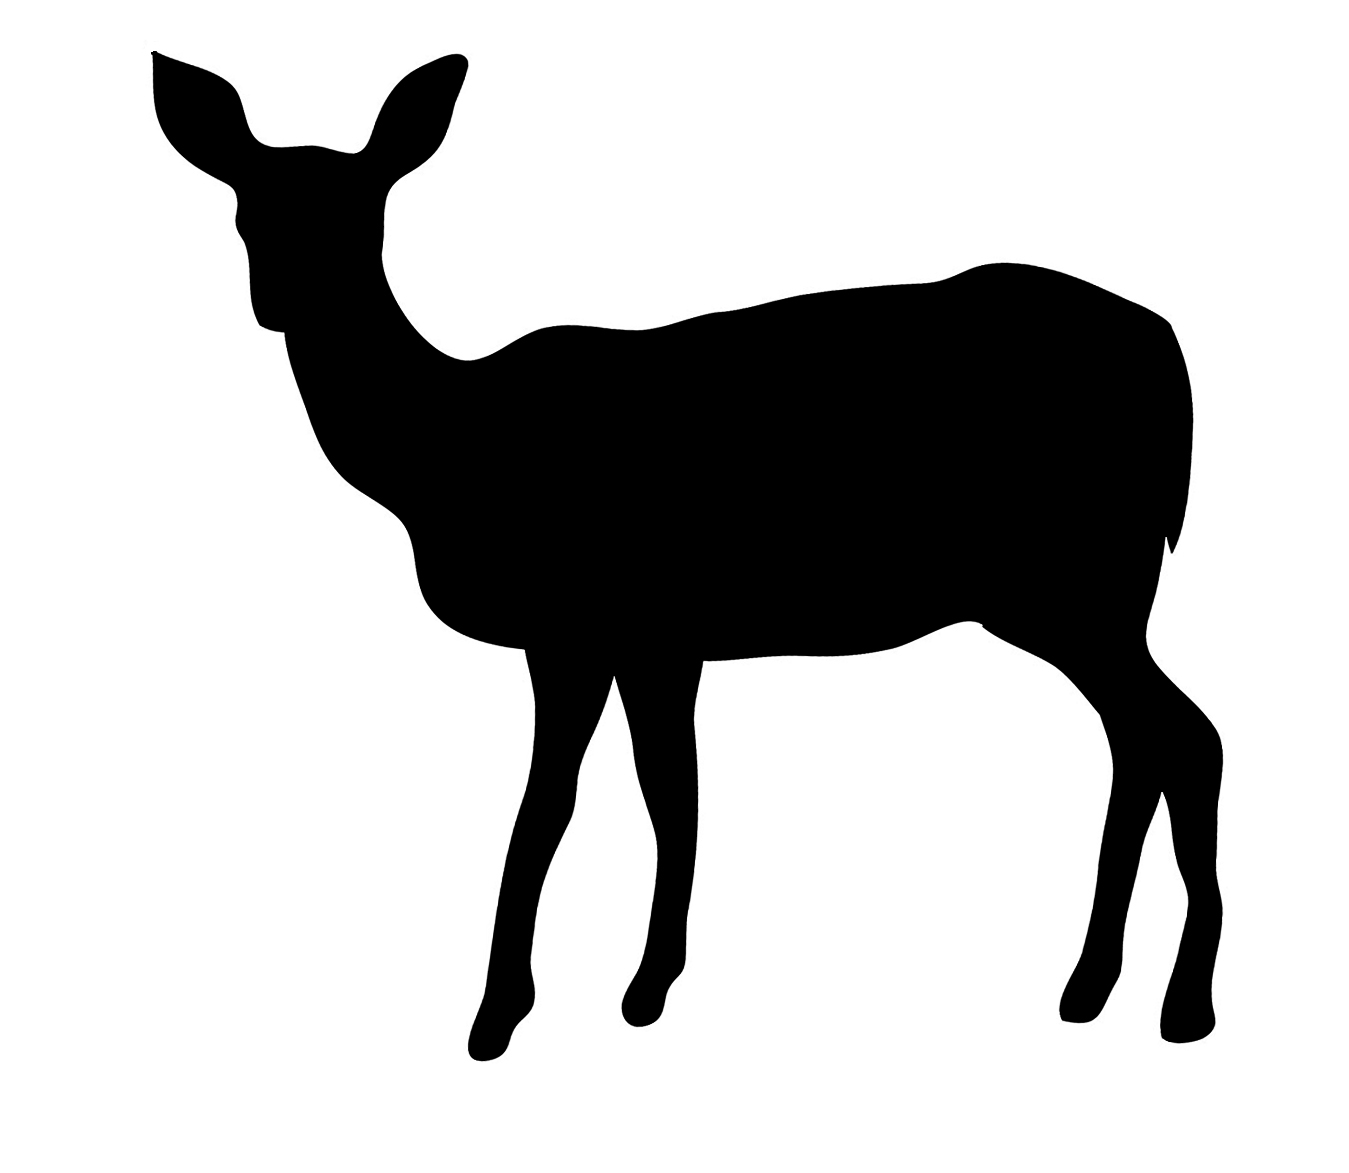 Fawn Silhouette Png - Free Deer Silhouette Png, Download Free Clip Art, Free Clip Art on ...